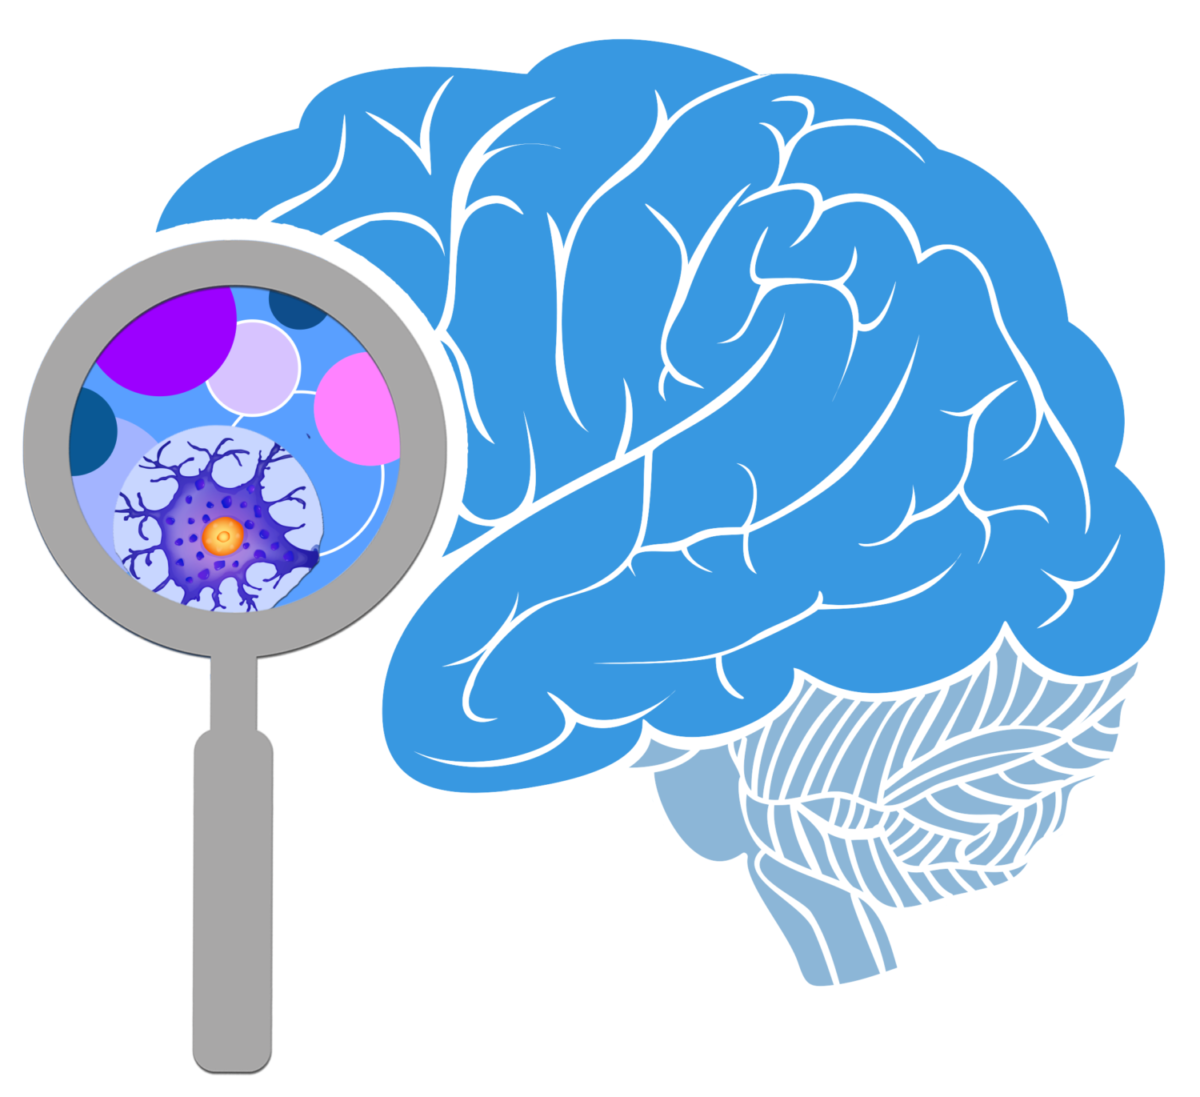 Omega 3s and the brain